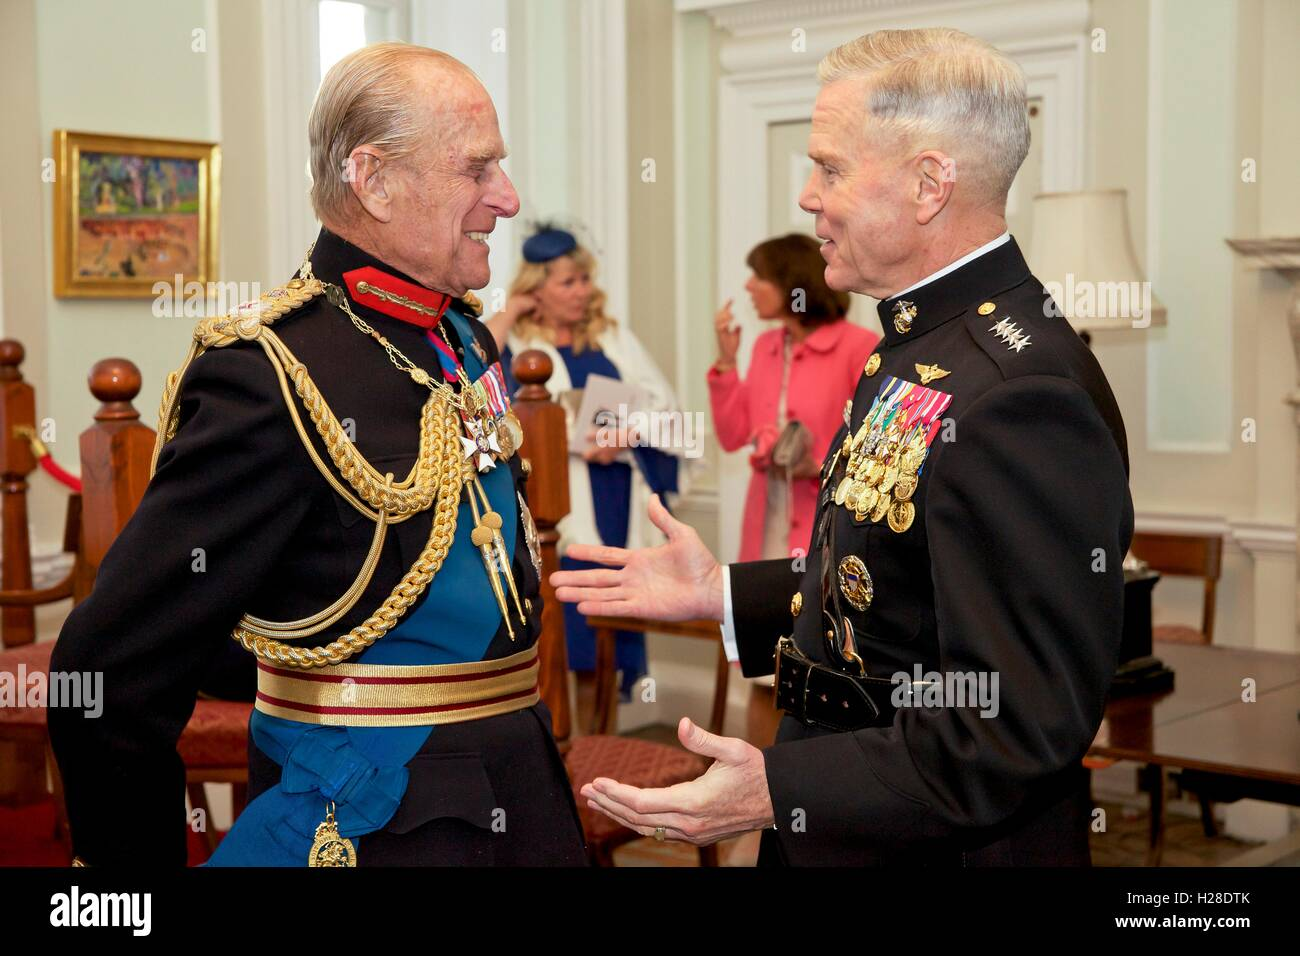 U.S. Marine Corps Commandant General James F. Amos chats with the Duke of Edinburgh Prince Philip during a reception Stock Photo